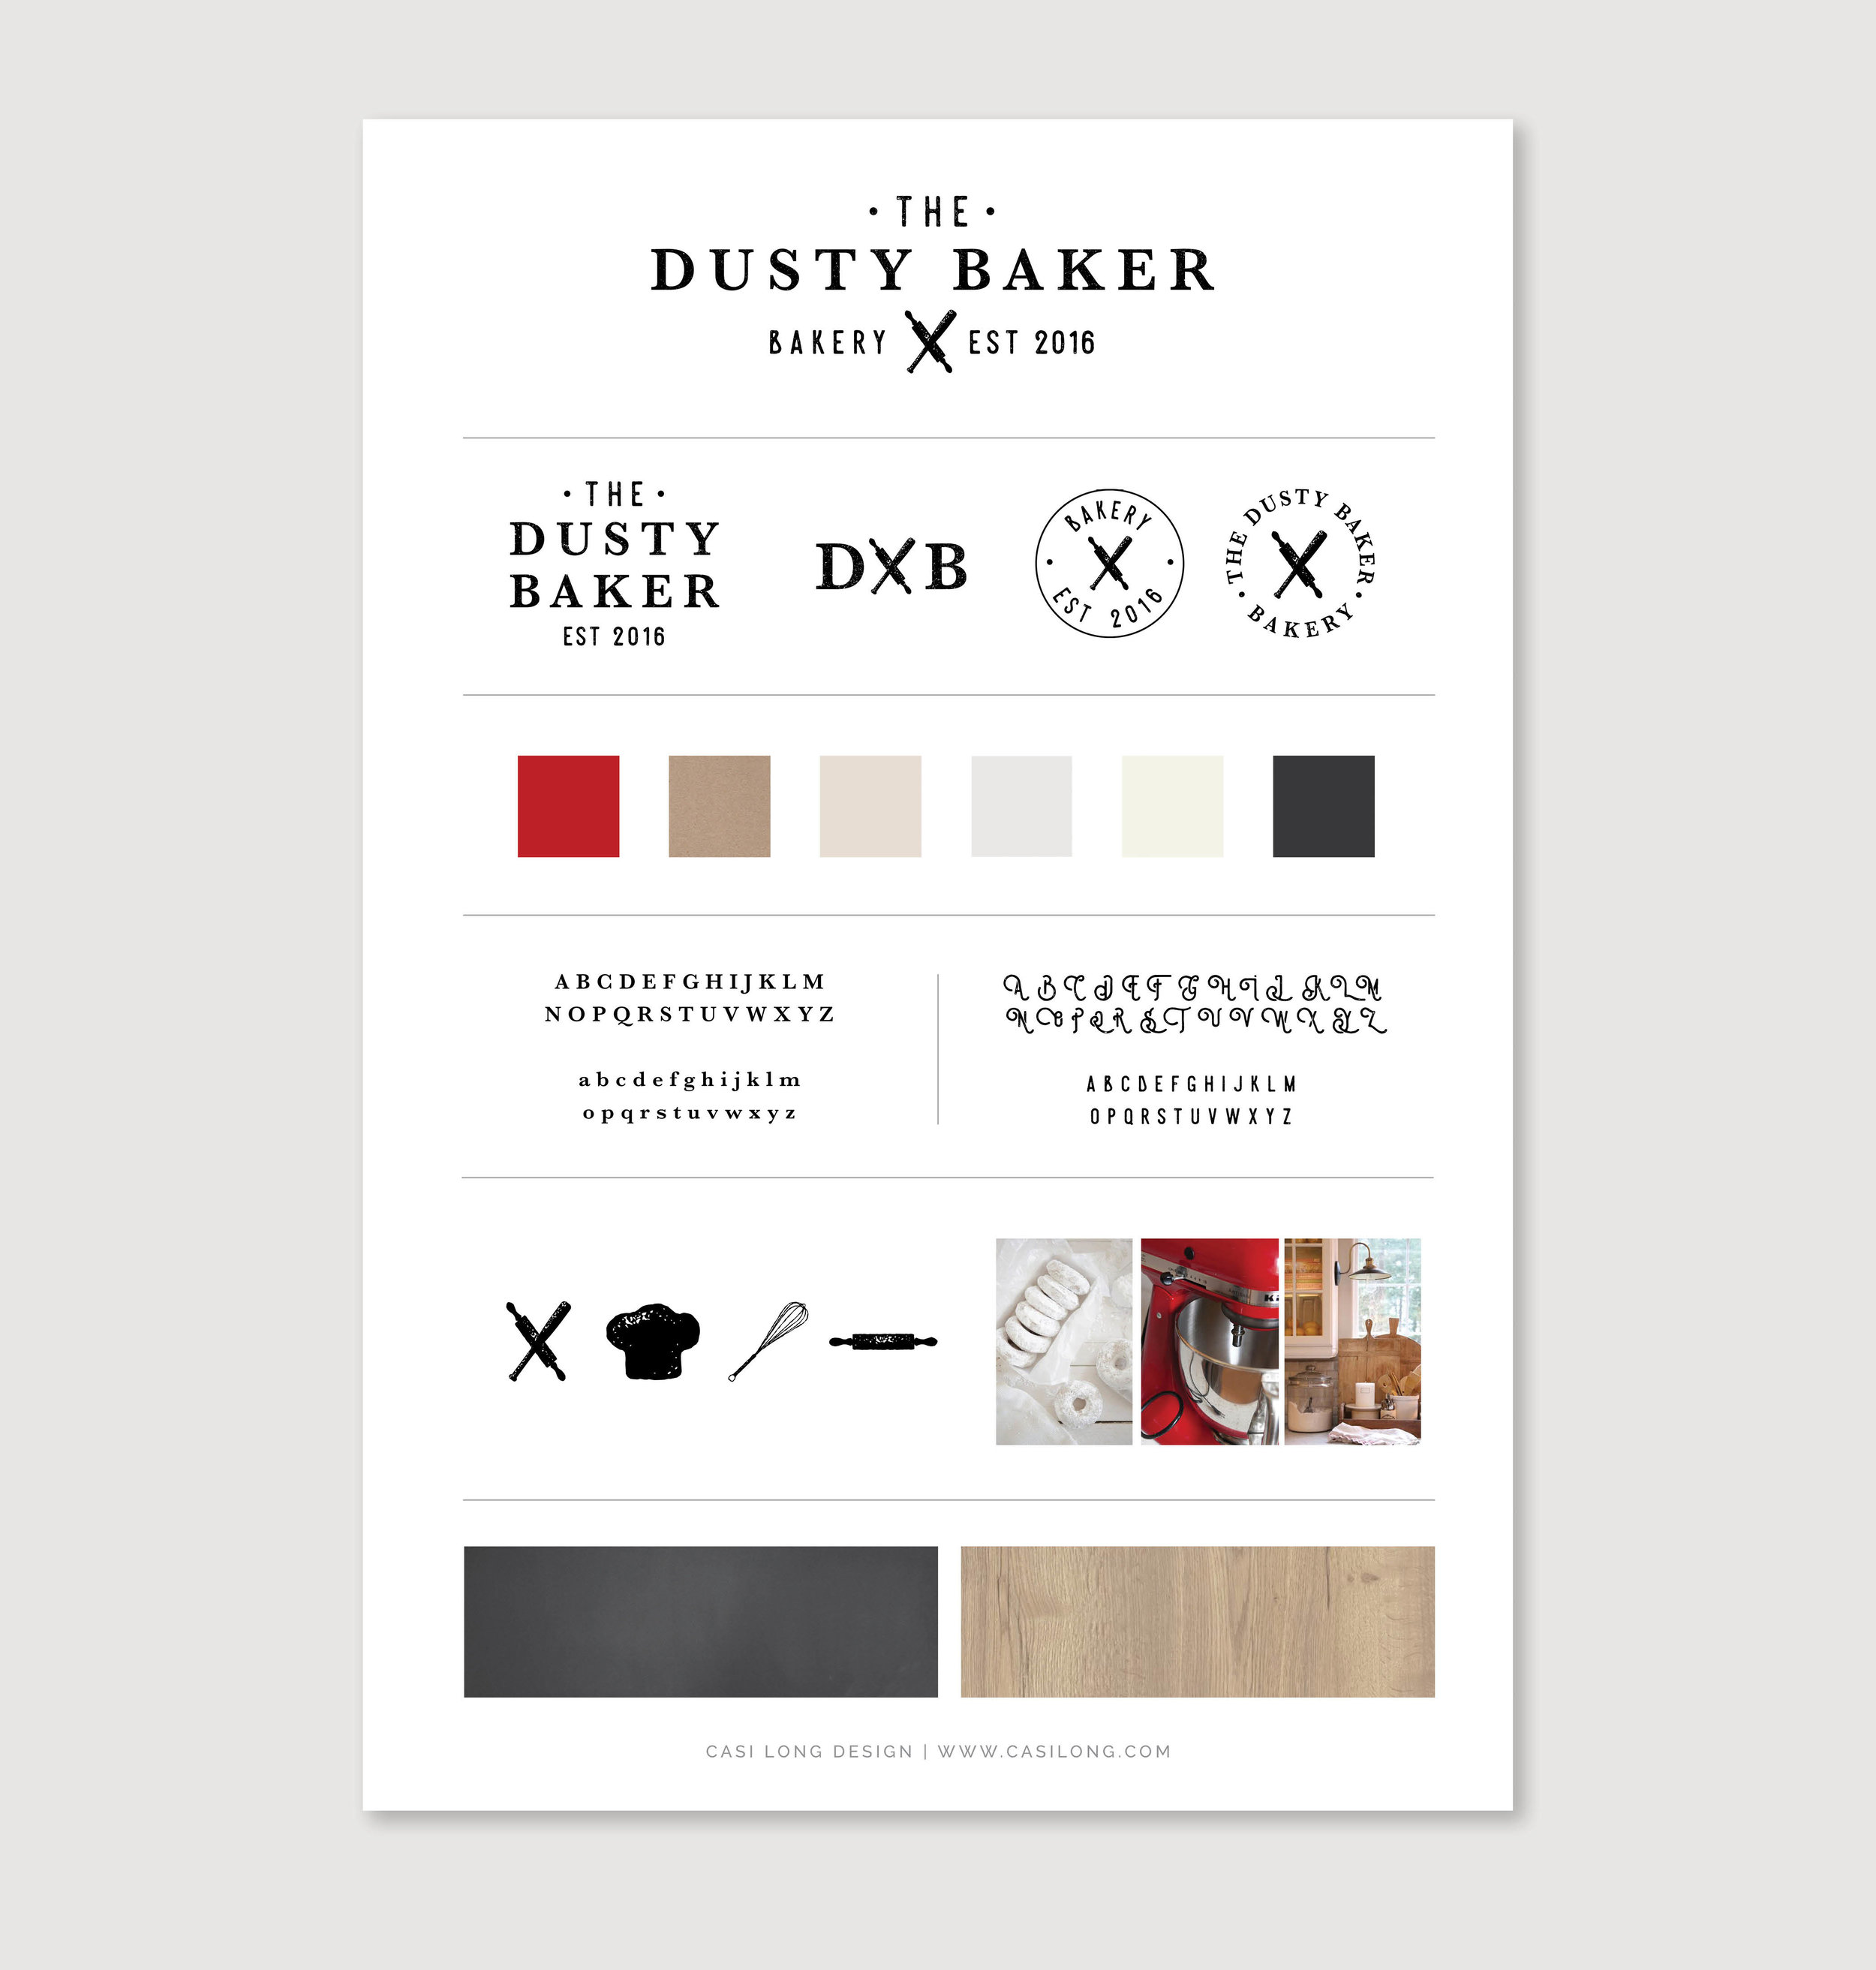 The Dusty Baker Branding | By Casi Long Design | casilong.com .jpg